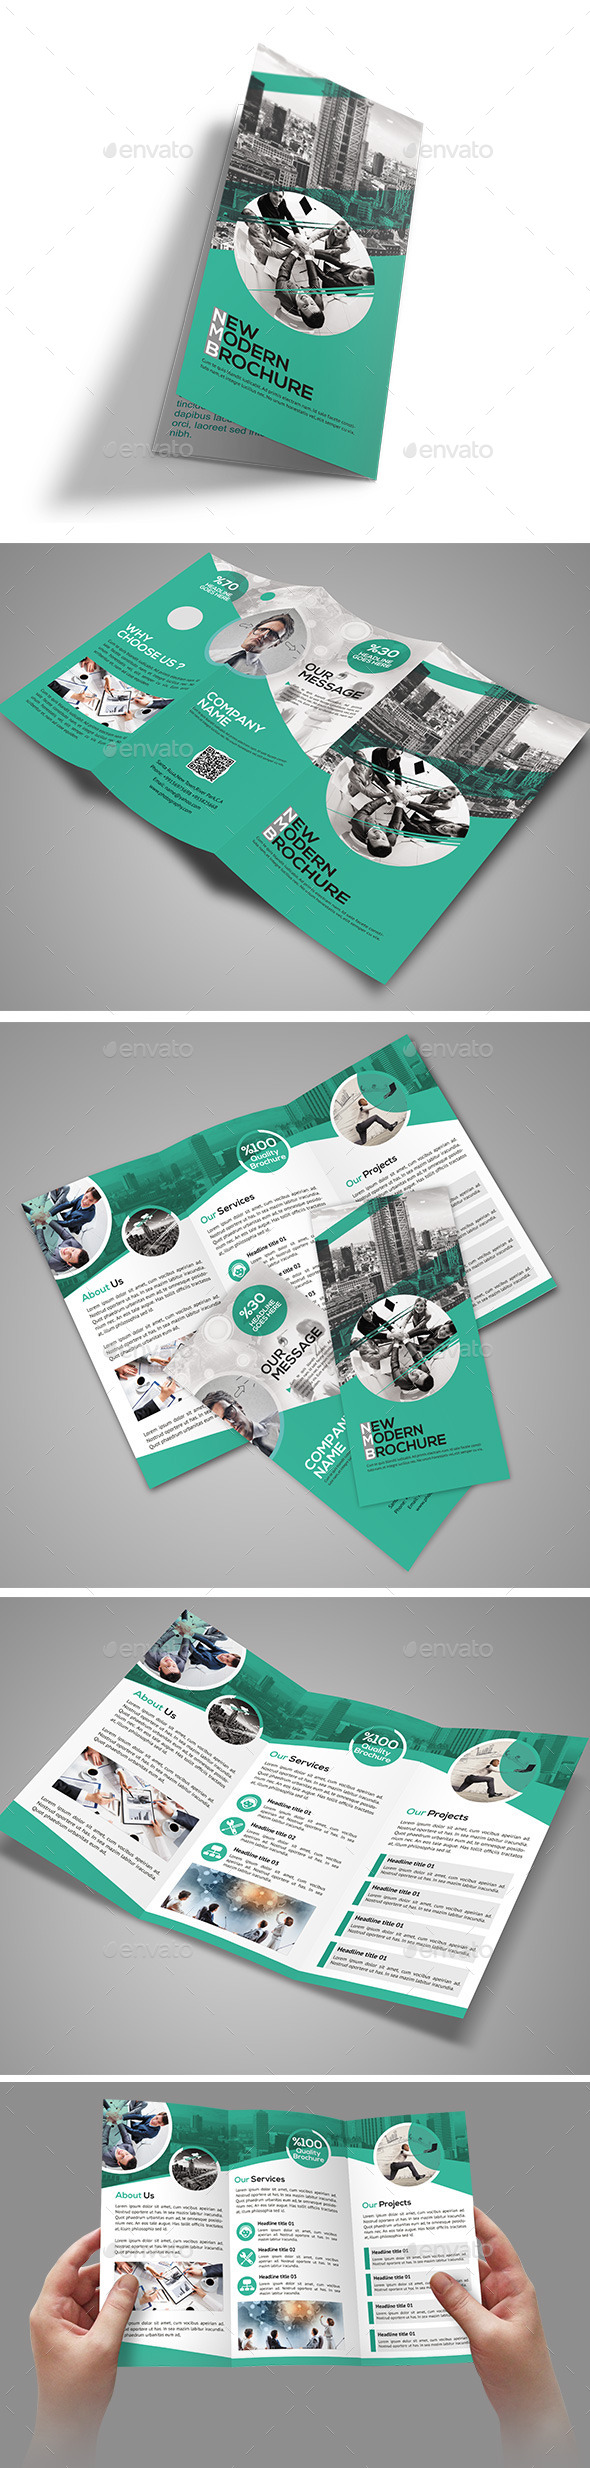 GraphicRiver Tri-Fold Corporate Brochure 02 11558197